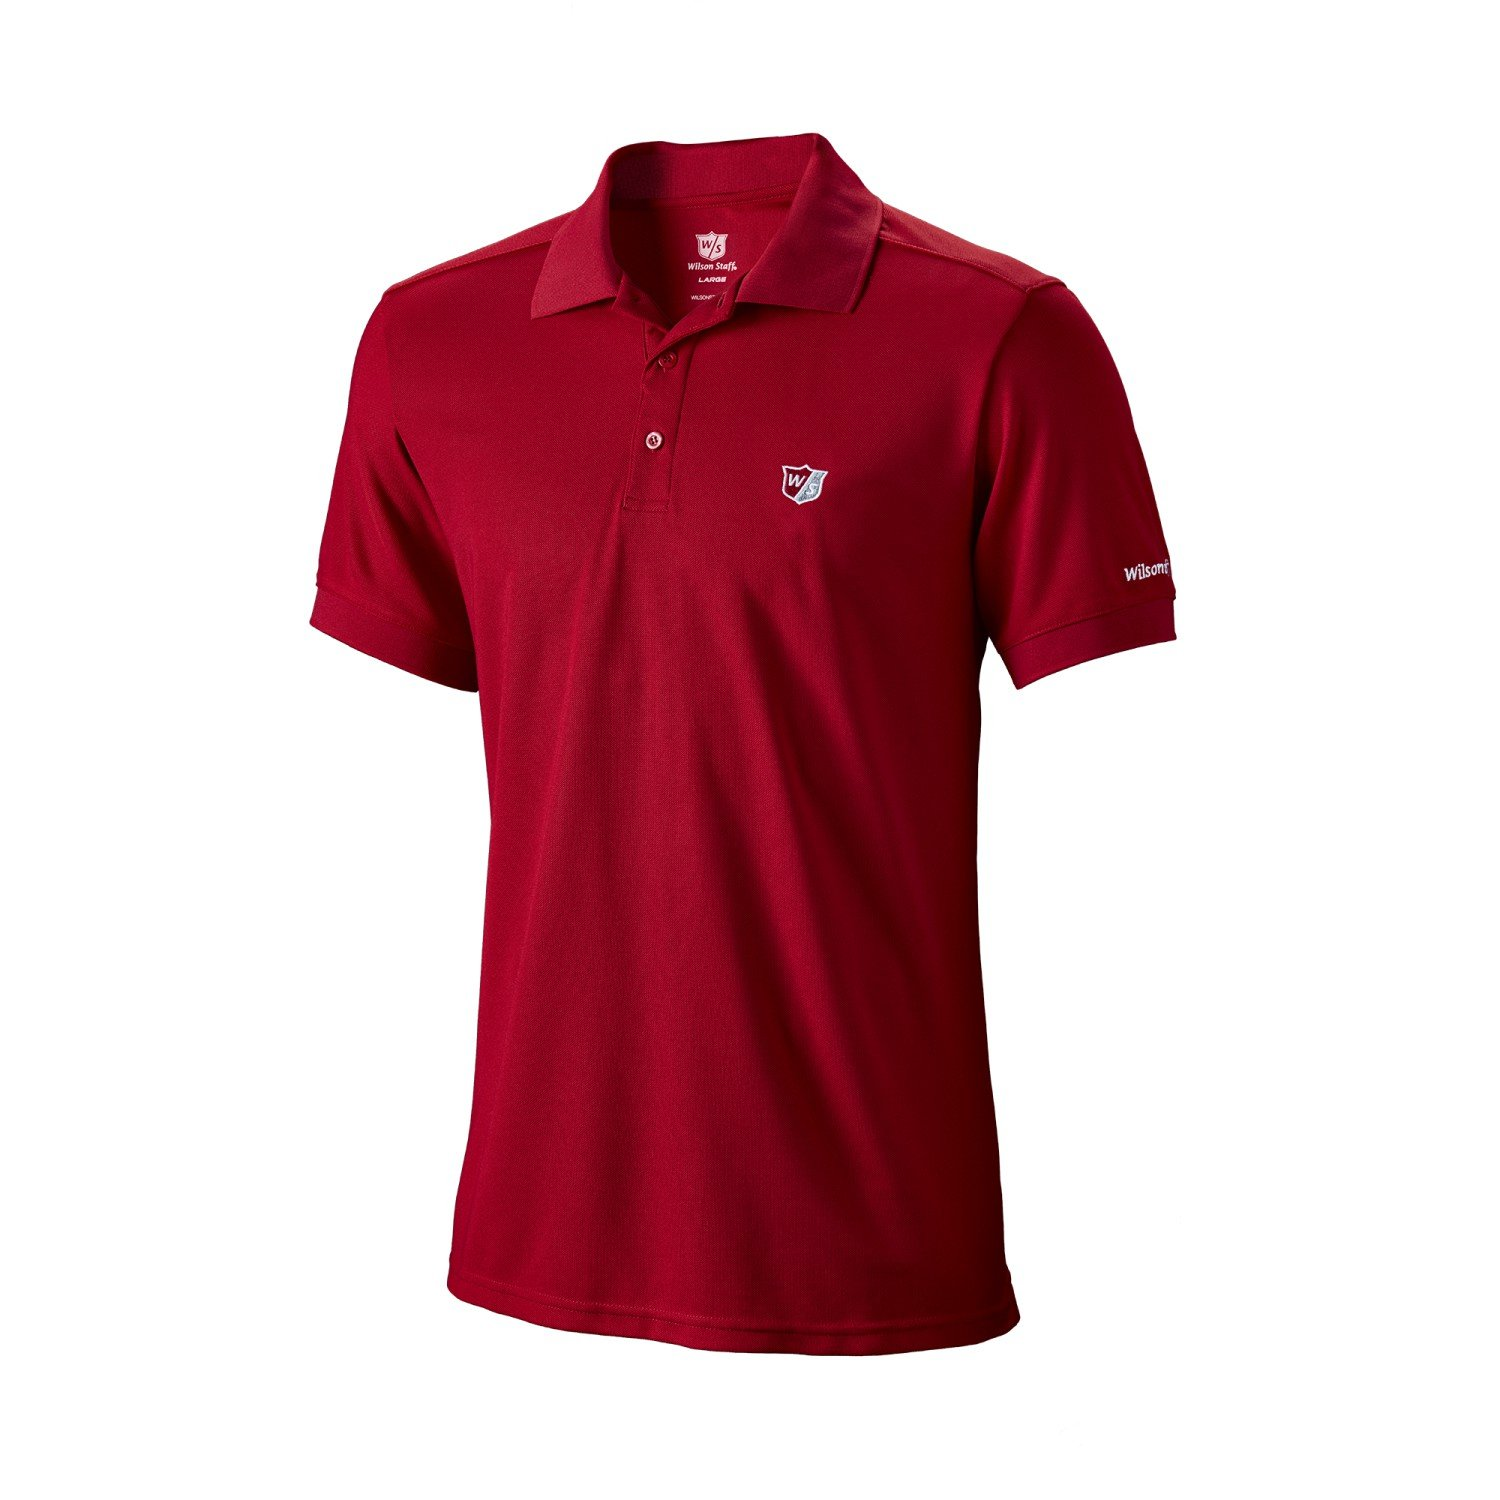 Wilson Polo Mens Authentic Polo S Rouge tgLBd